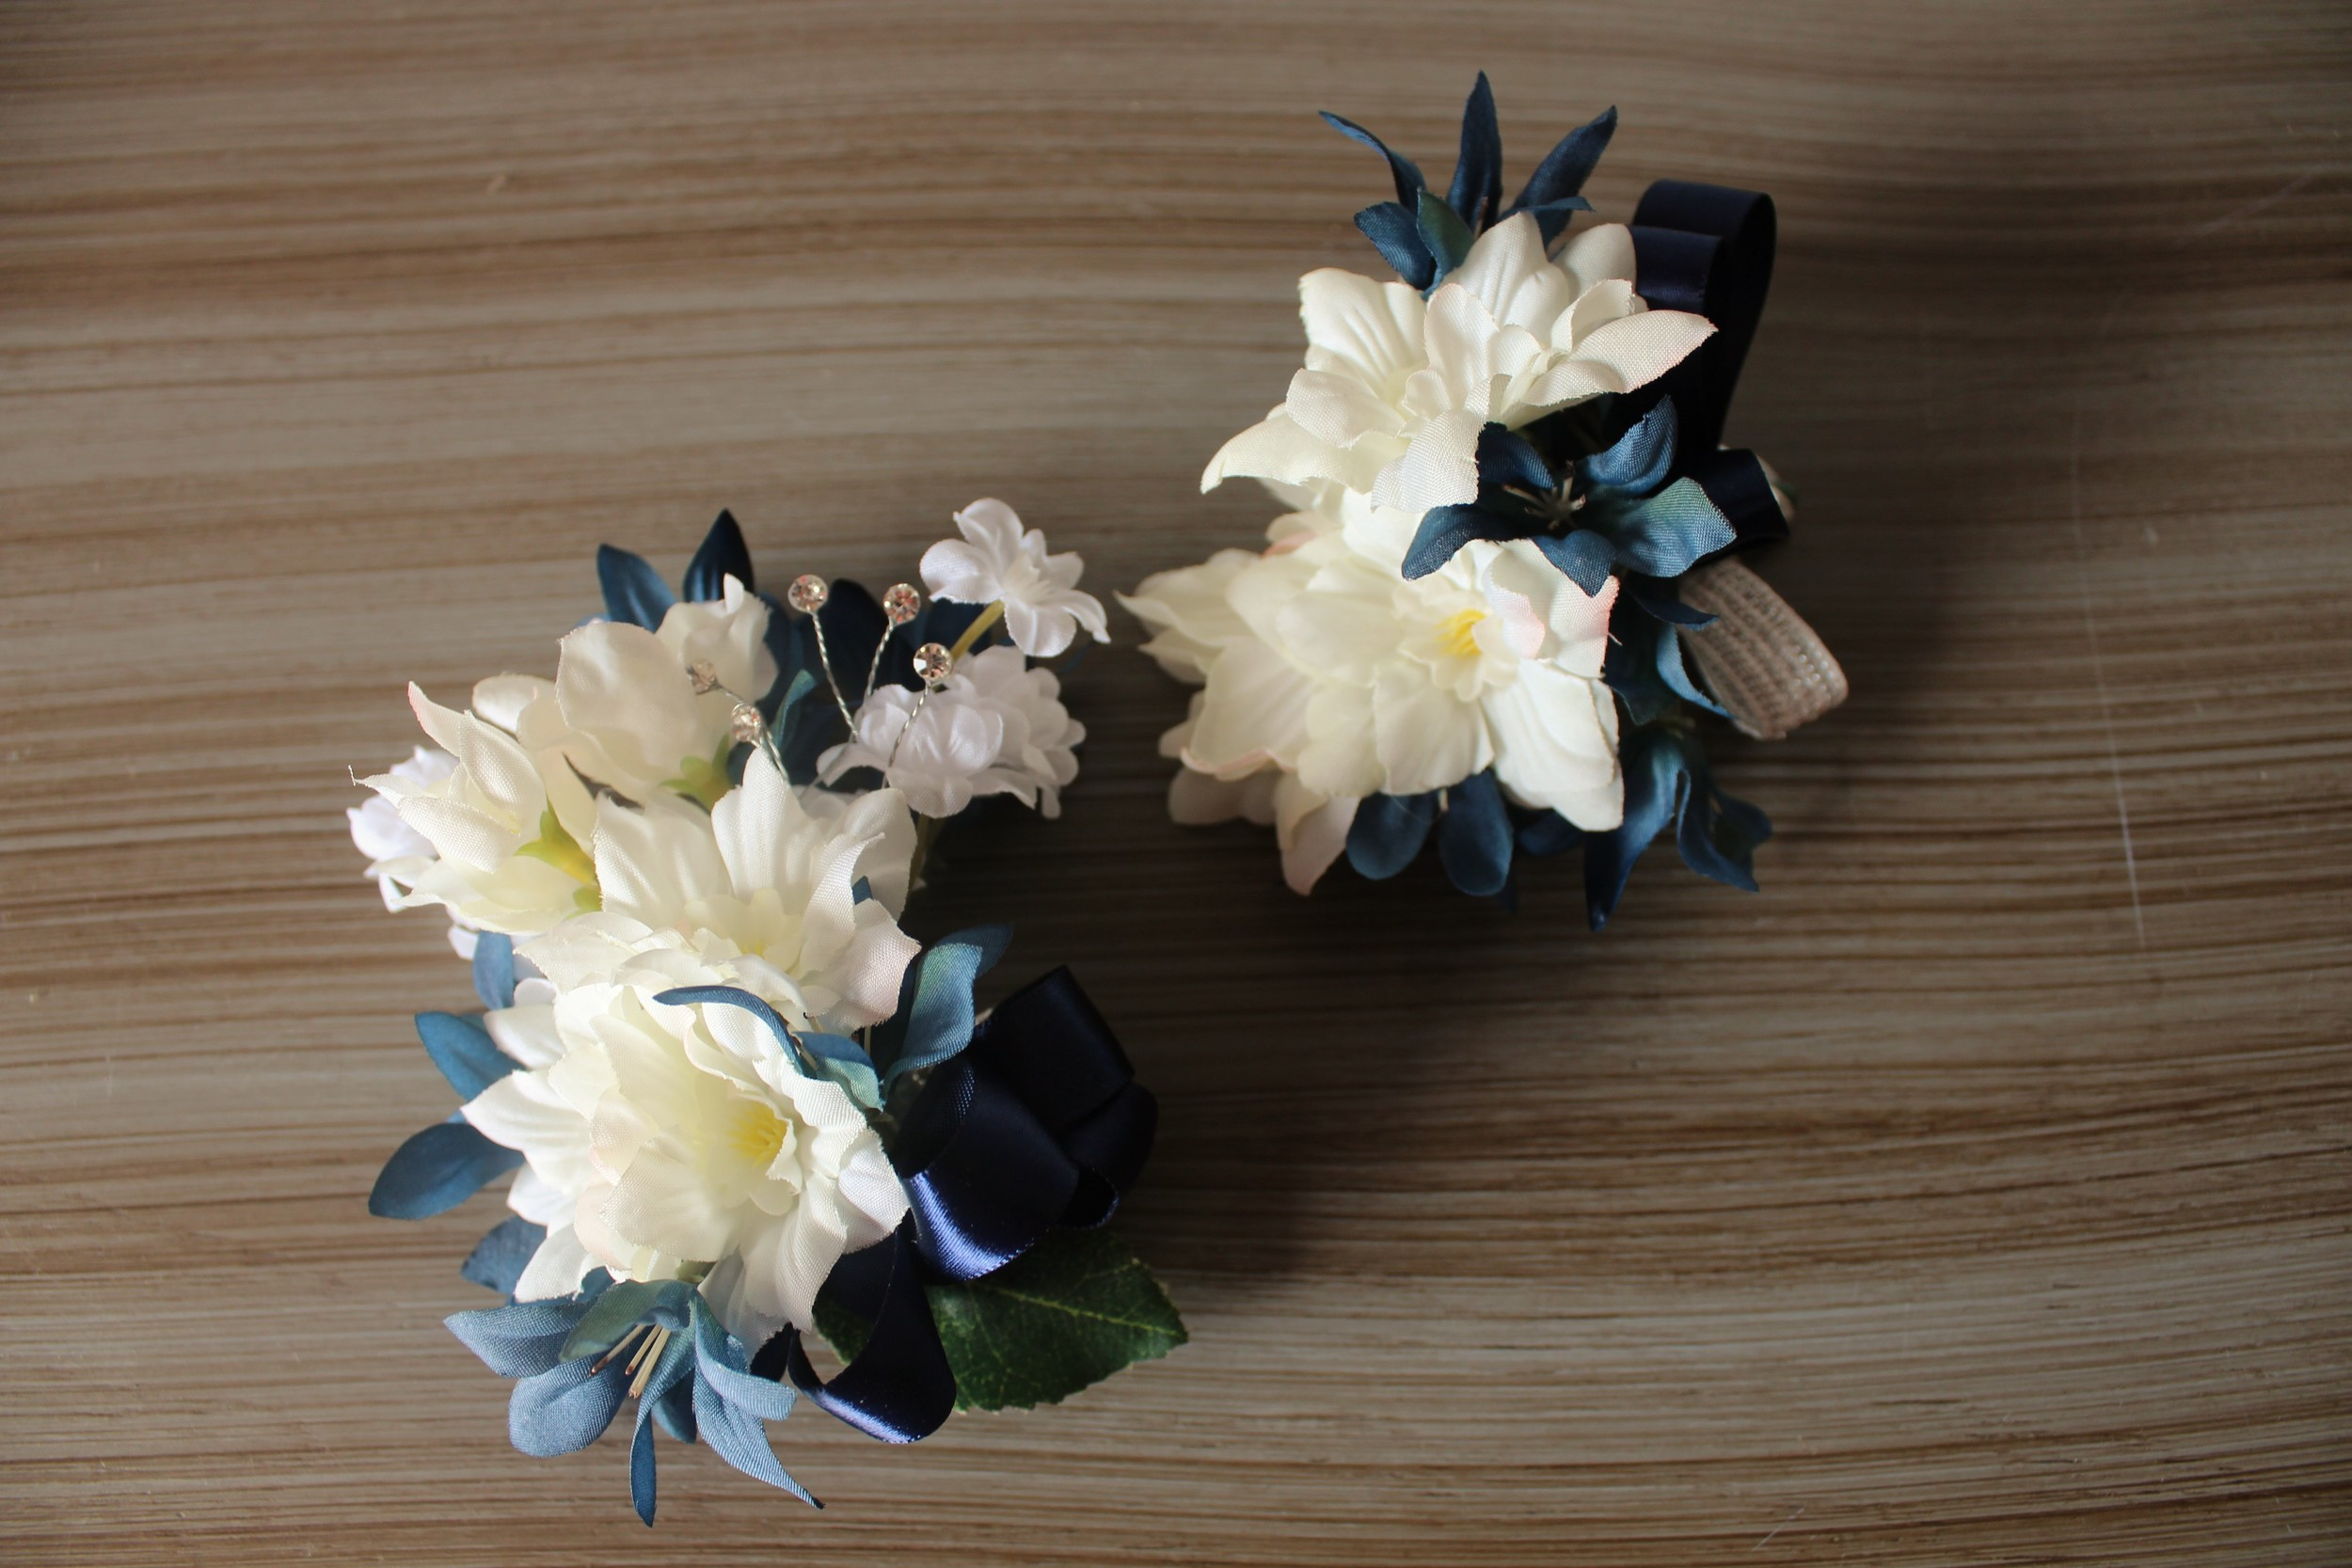 minneapolis-silk-wedding-flowers-corsages.jpg